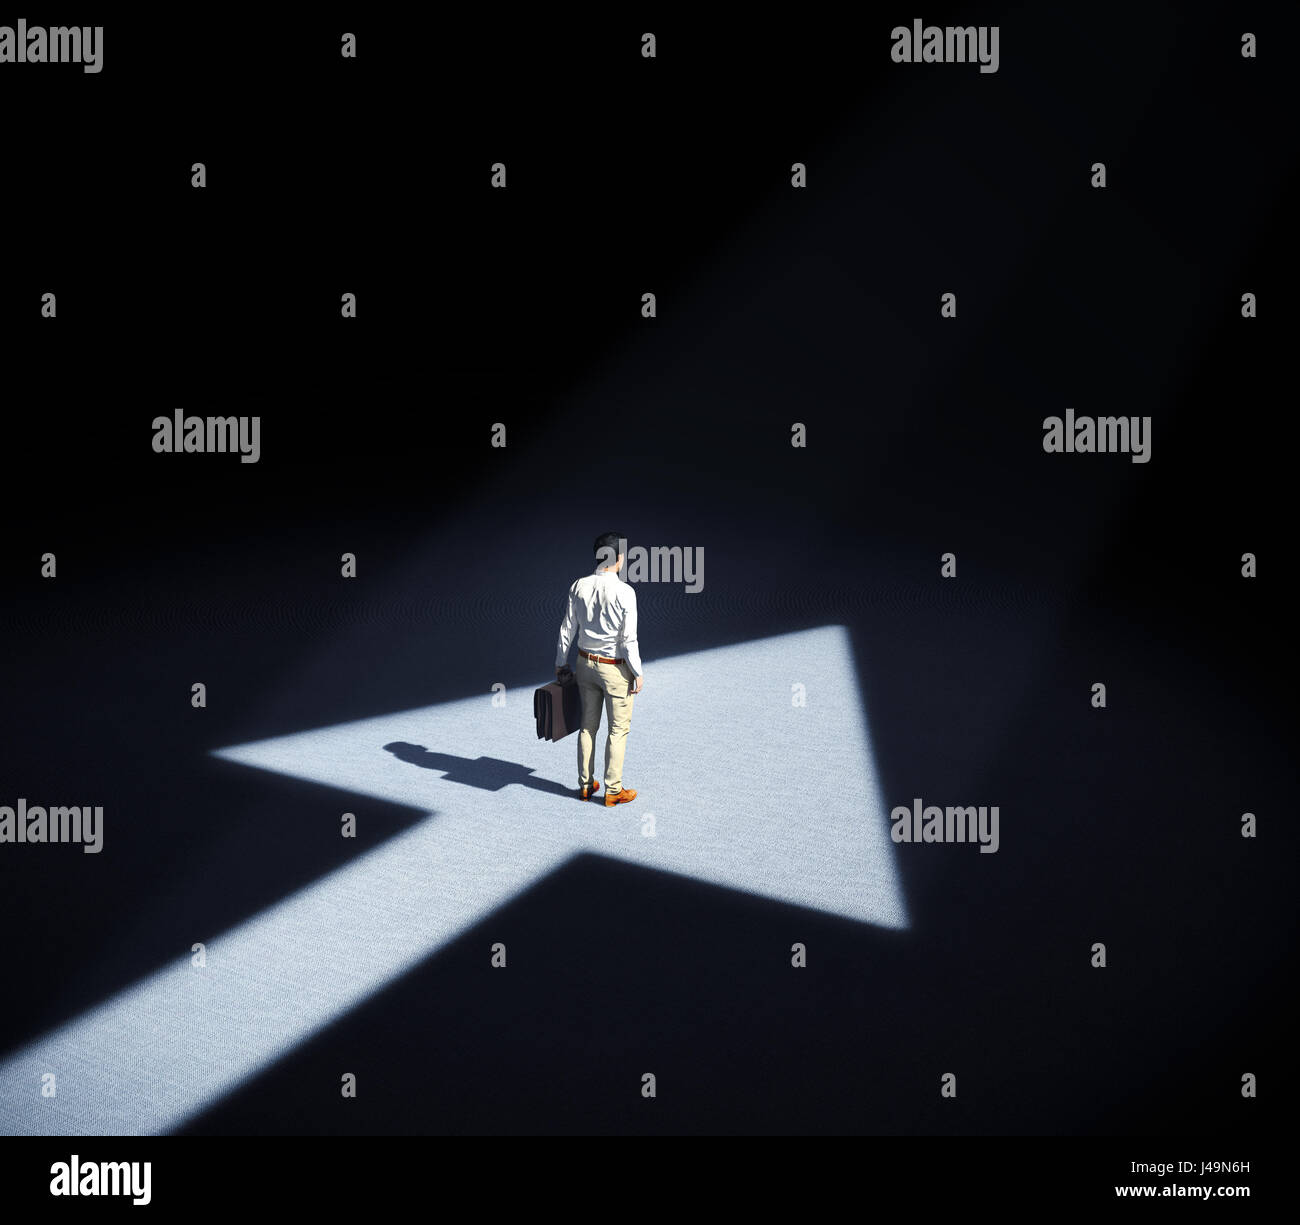 Homme debout dans un spot formant un symbole de flèche - 3d illustration Photo Stock